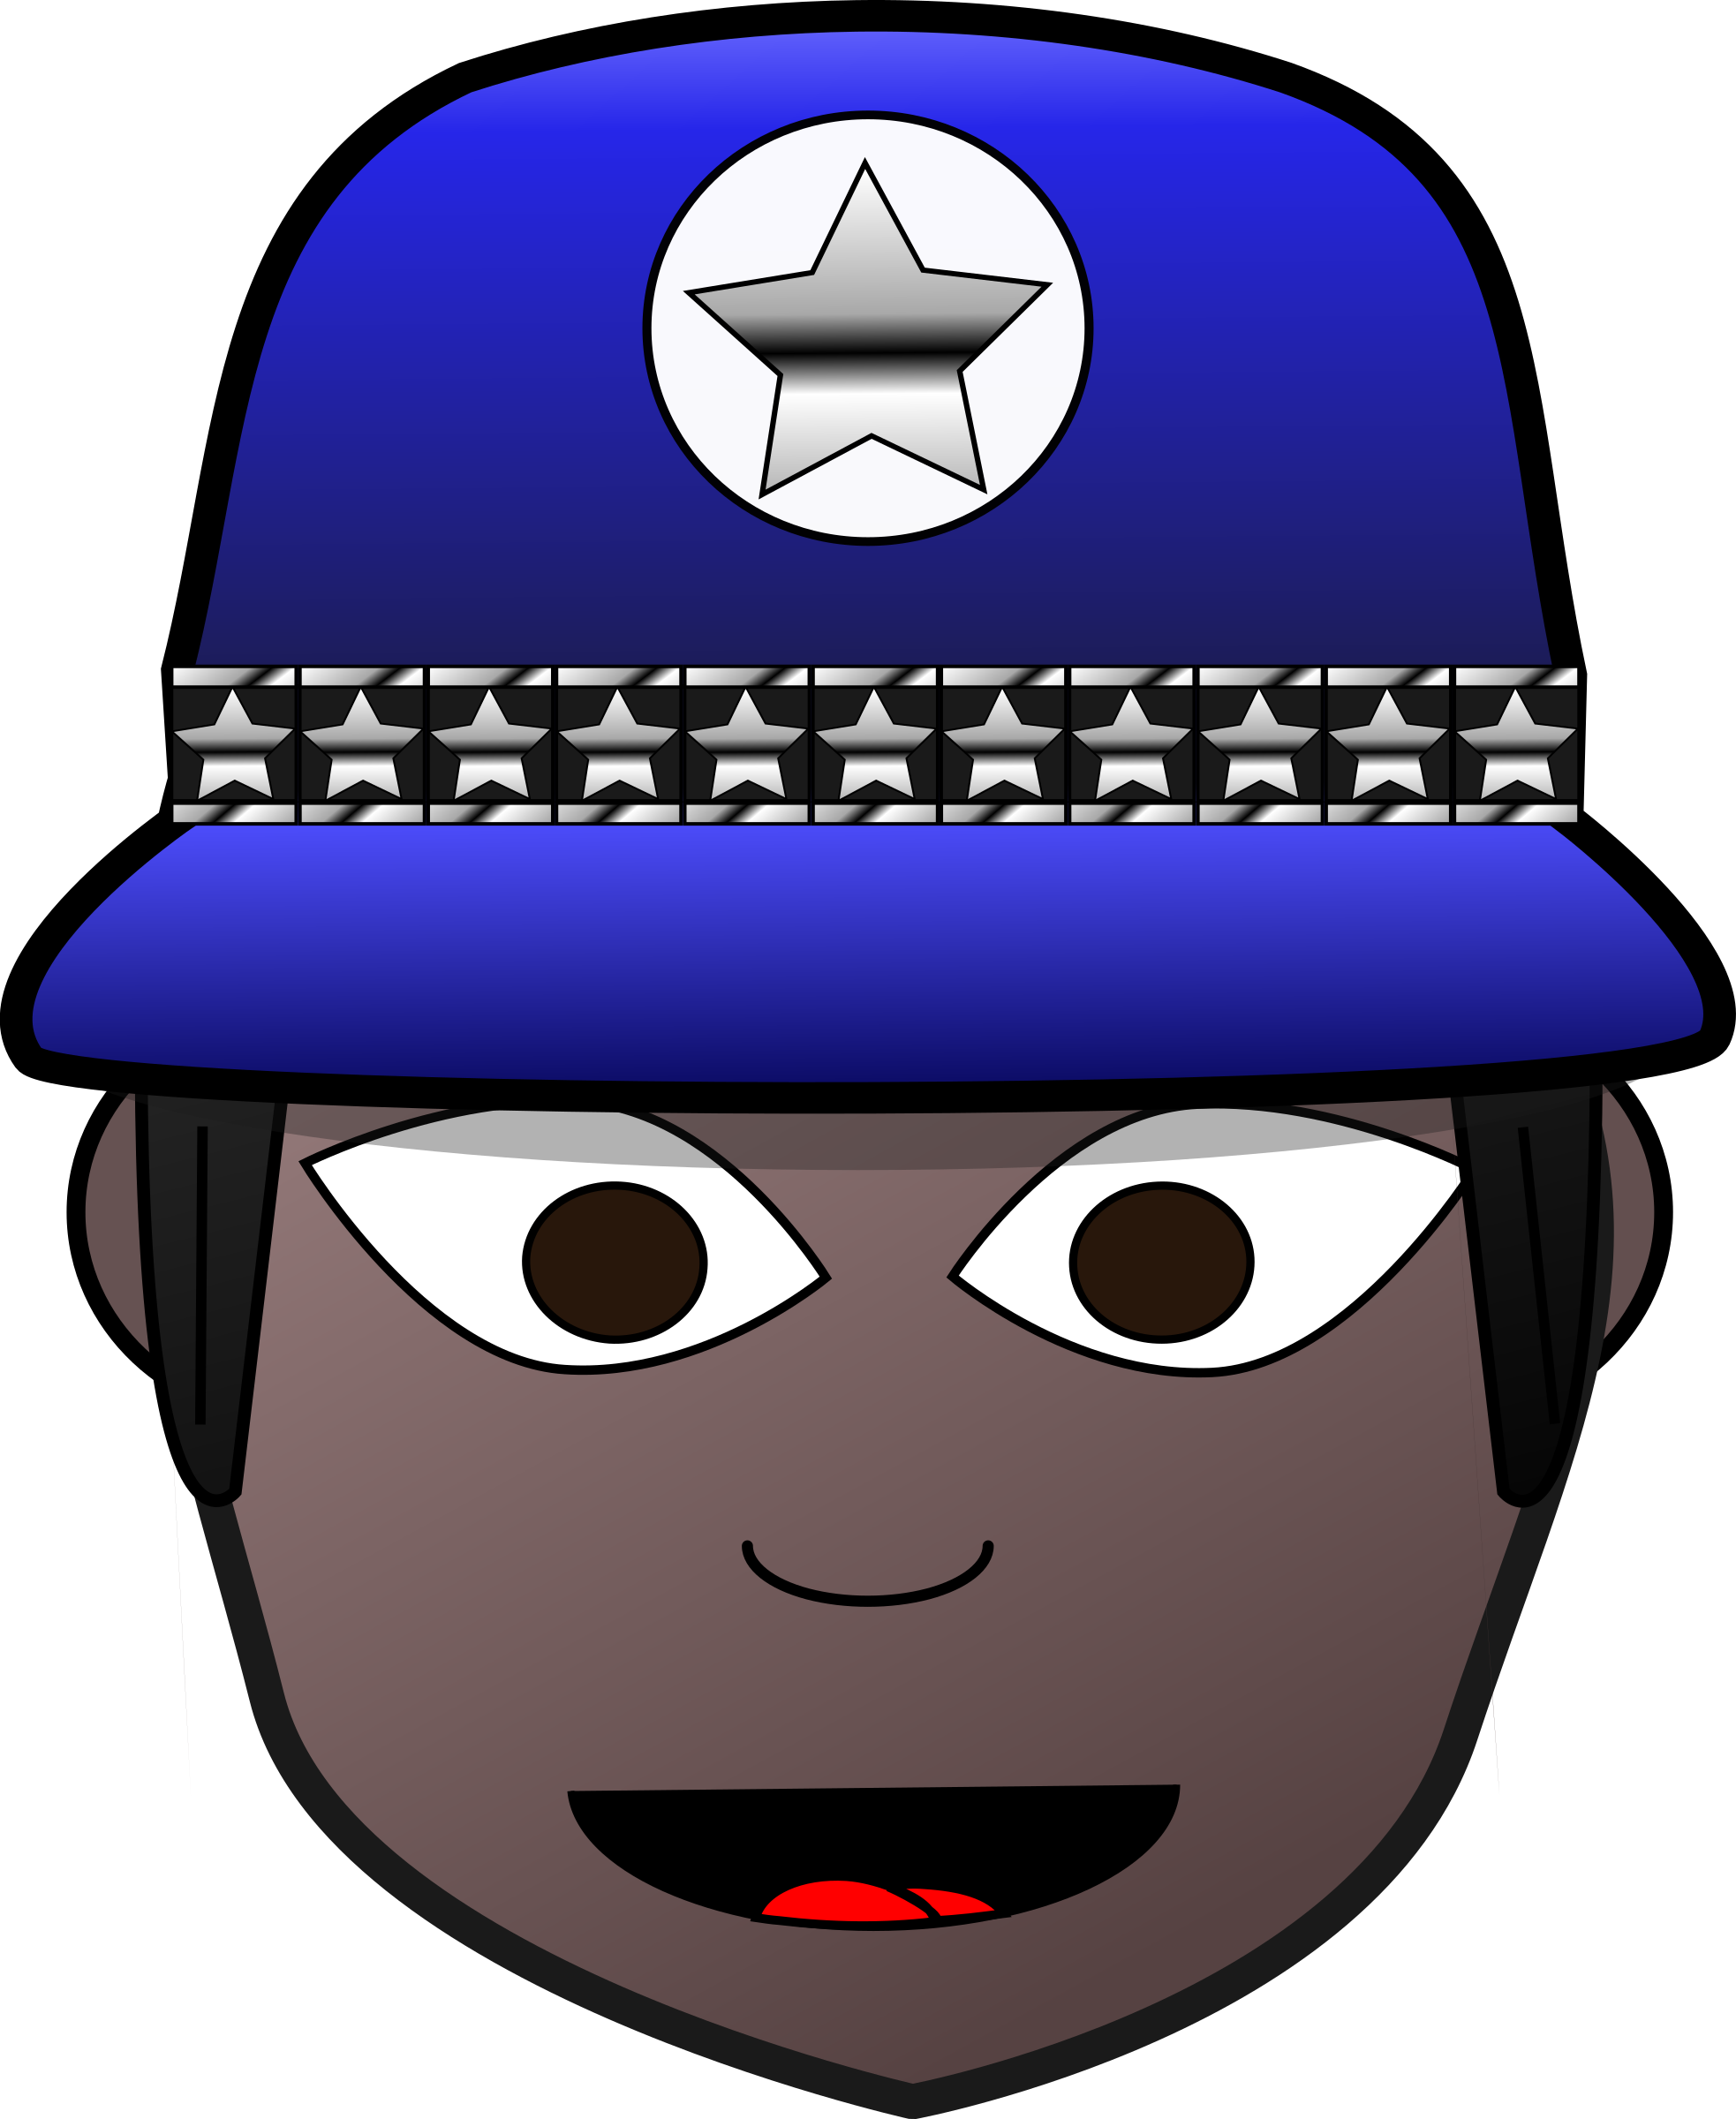 Woman big image png. Dress clipart police